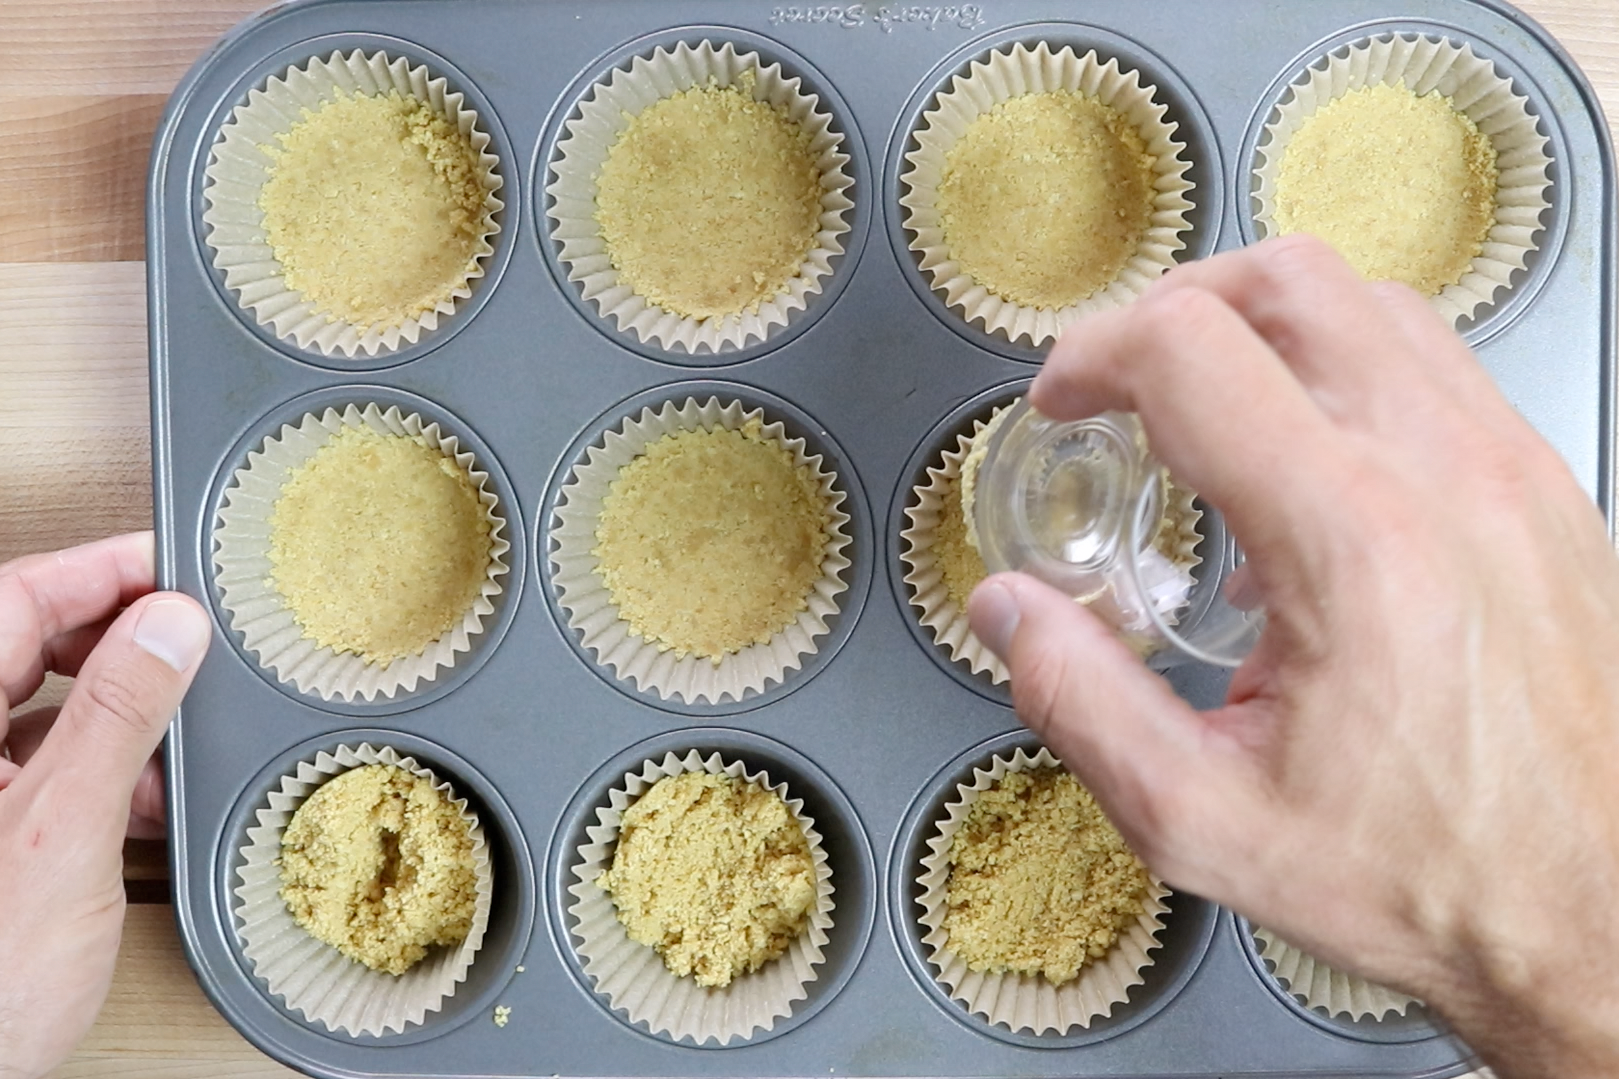 3. Spoon 1 tablespoon of crust into each cupcake liner. Press the graham cracker mixture into each lining with a spoon or the bottom of a glass. Bake for 5 minutes and set aside. -